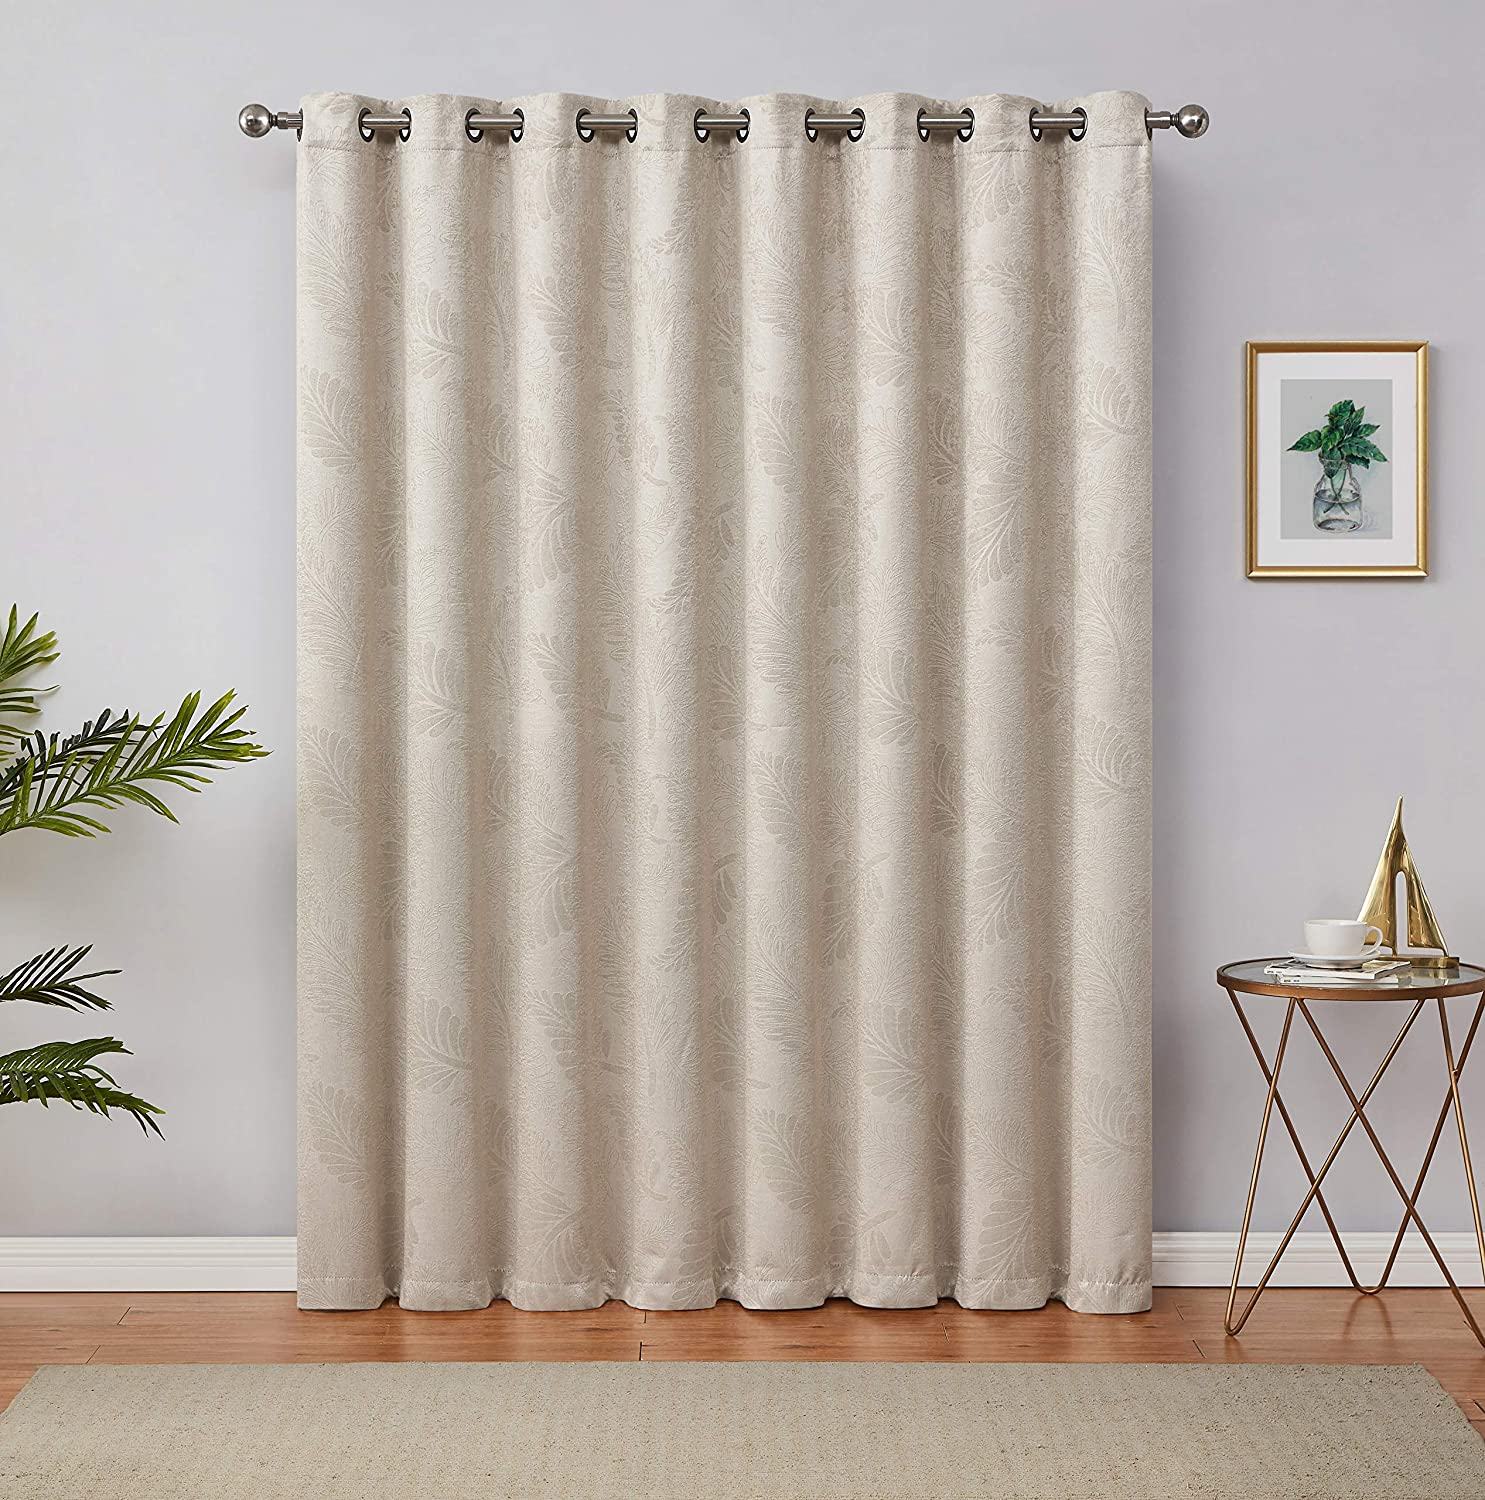 LinenZone 35% OFF Colorado Springs Mall - 3D Embossed Room Darkening Insulated Thermal Drapes